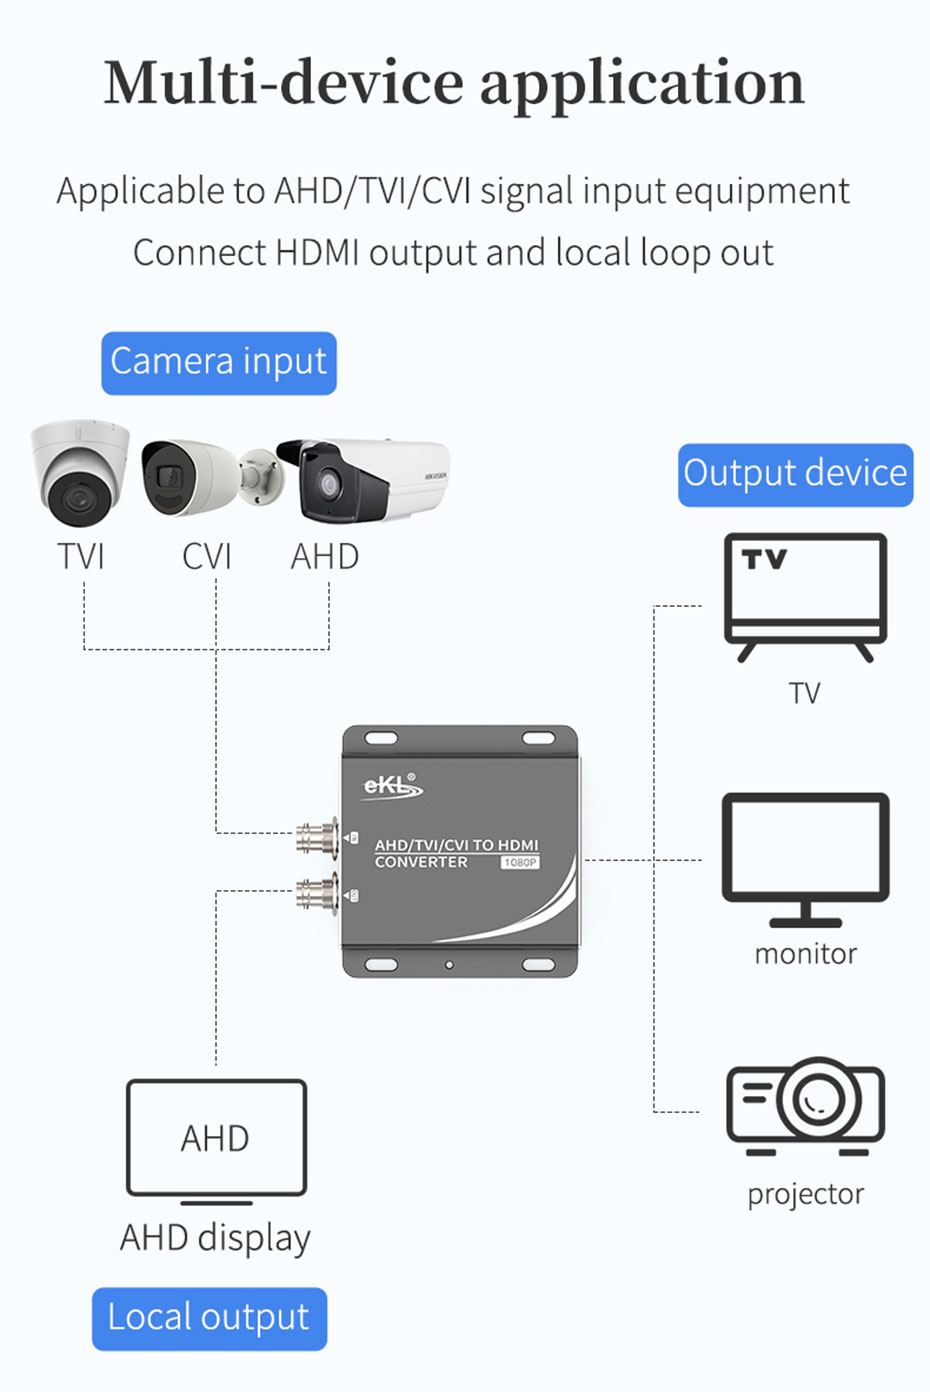 AHD/TVI/CVI to HDMI converter AHD use own brand